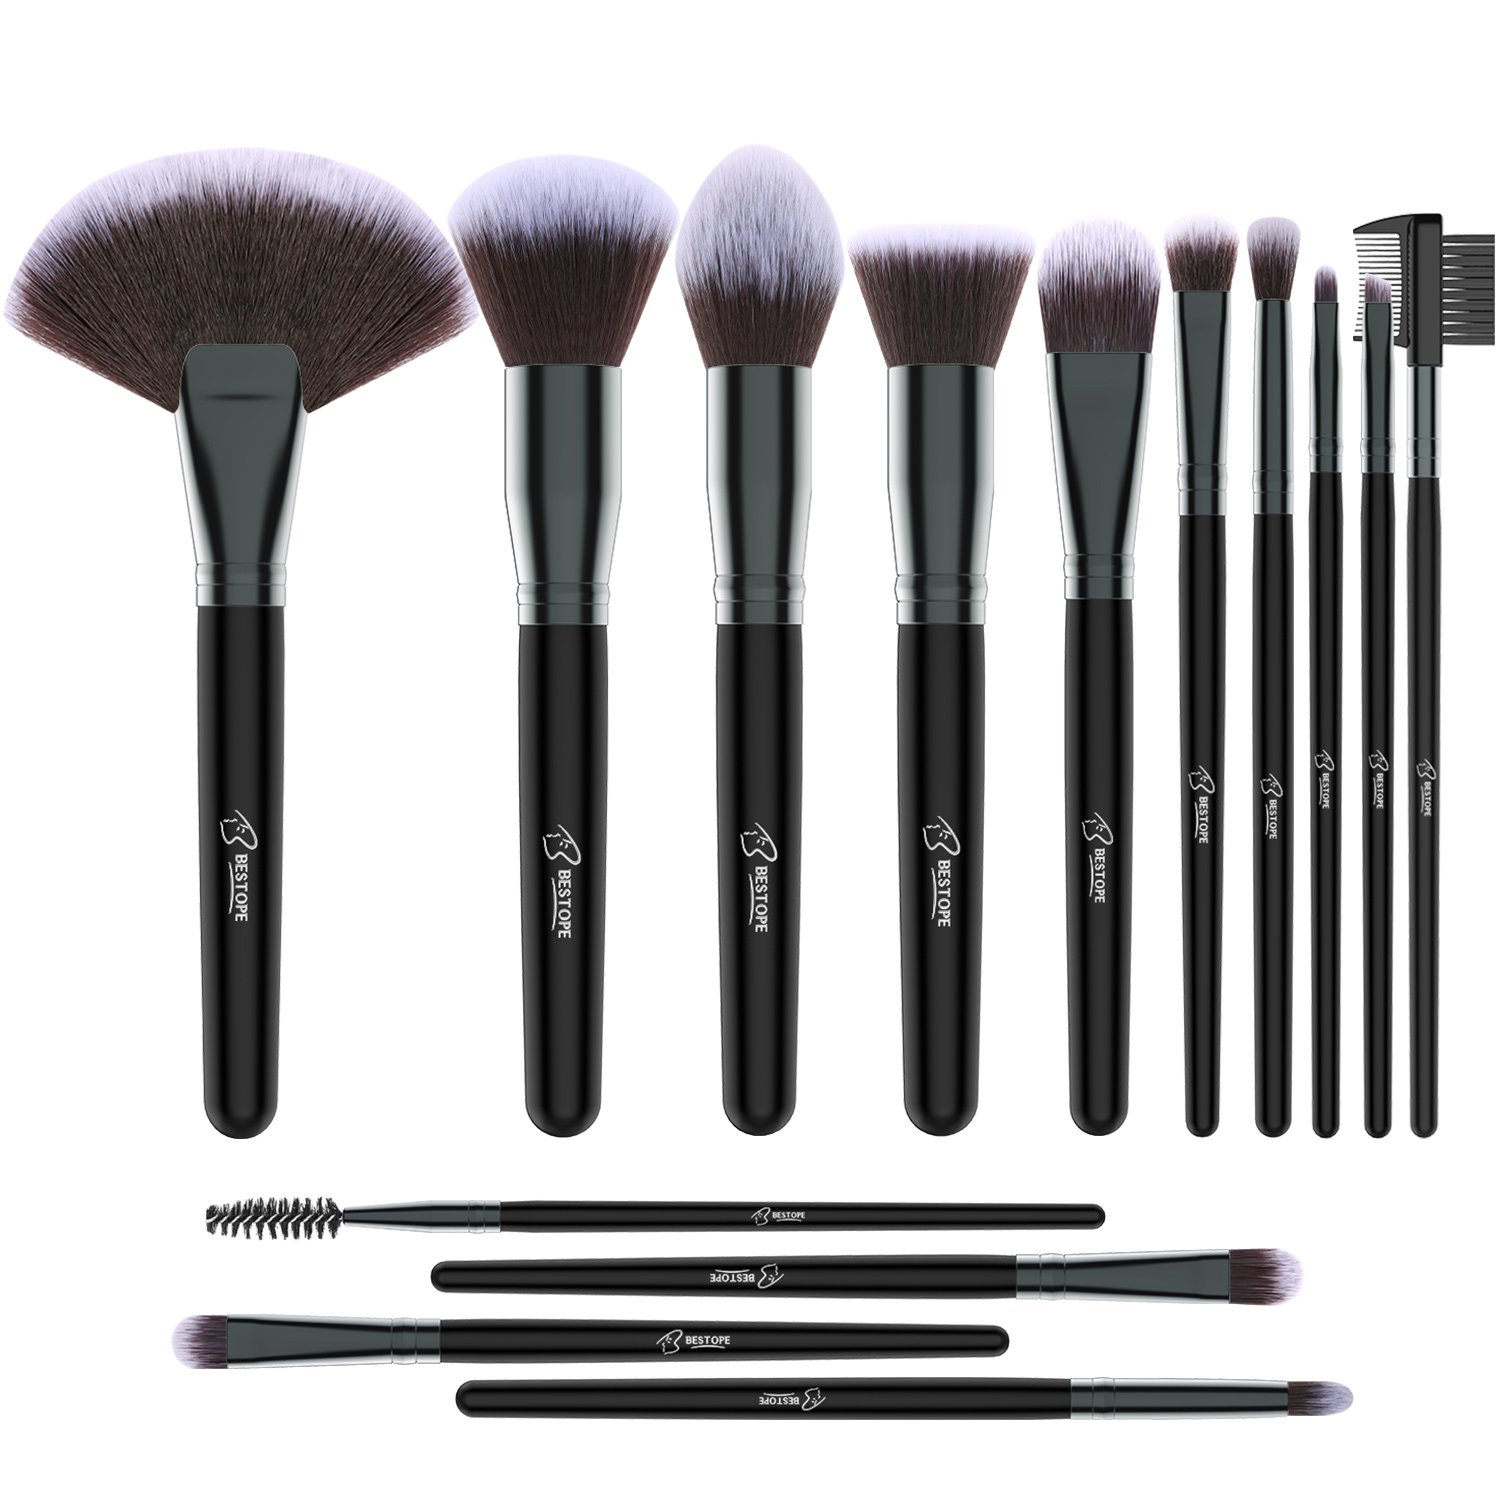 BESTOPE Premium Makeup Brushes Set, 14 Pieces Pro Synthetic Makeup Brushes Foundation Power Eyeshadow Eyeliner Blending Lip Concealer Face Brush Blush Brush, Beauty Cosmetic Tools Ltd.